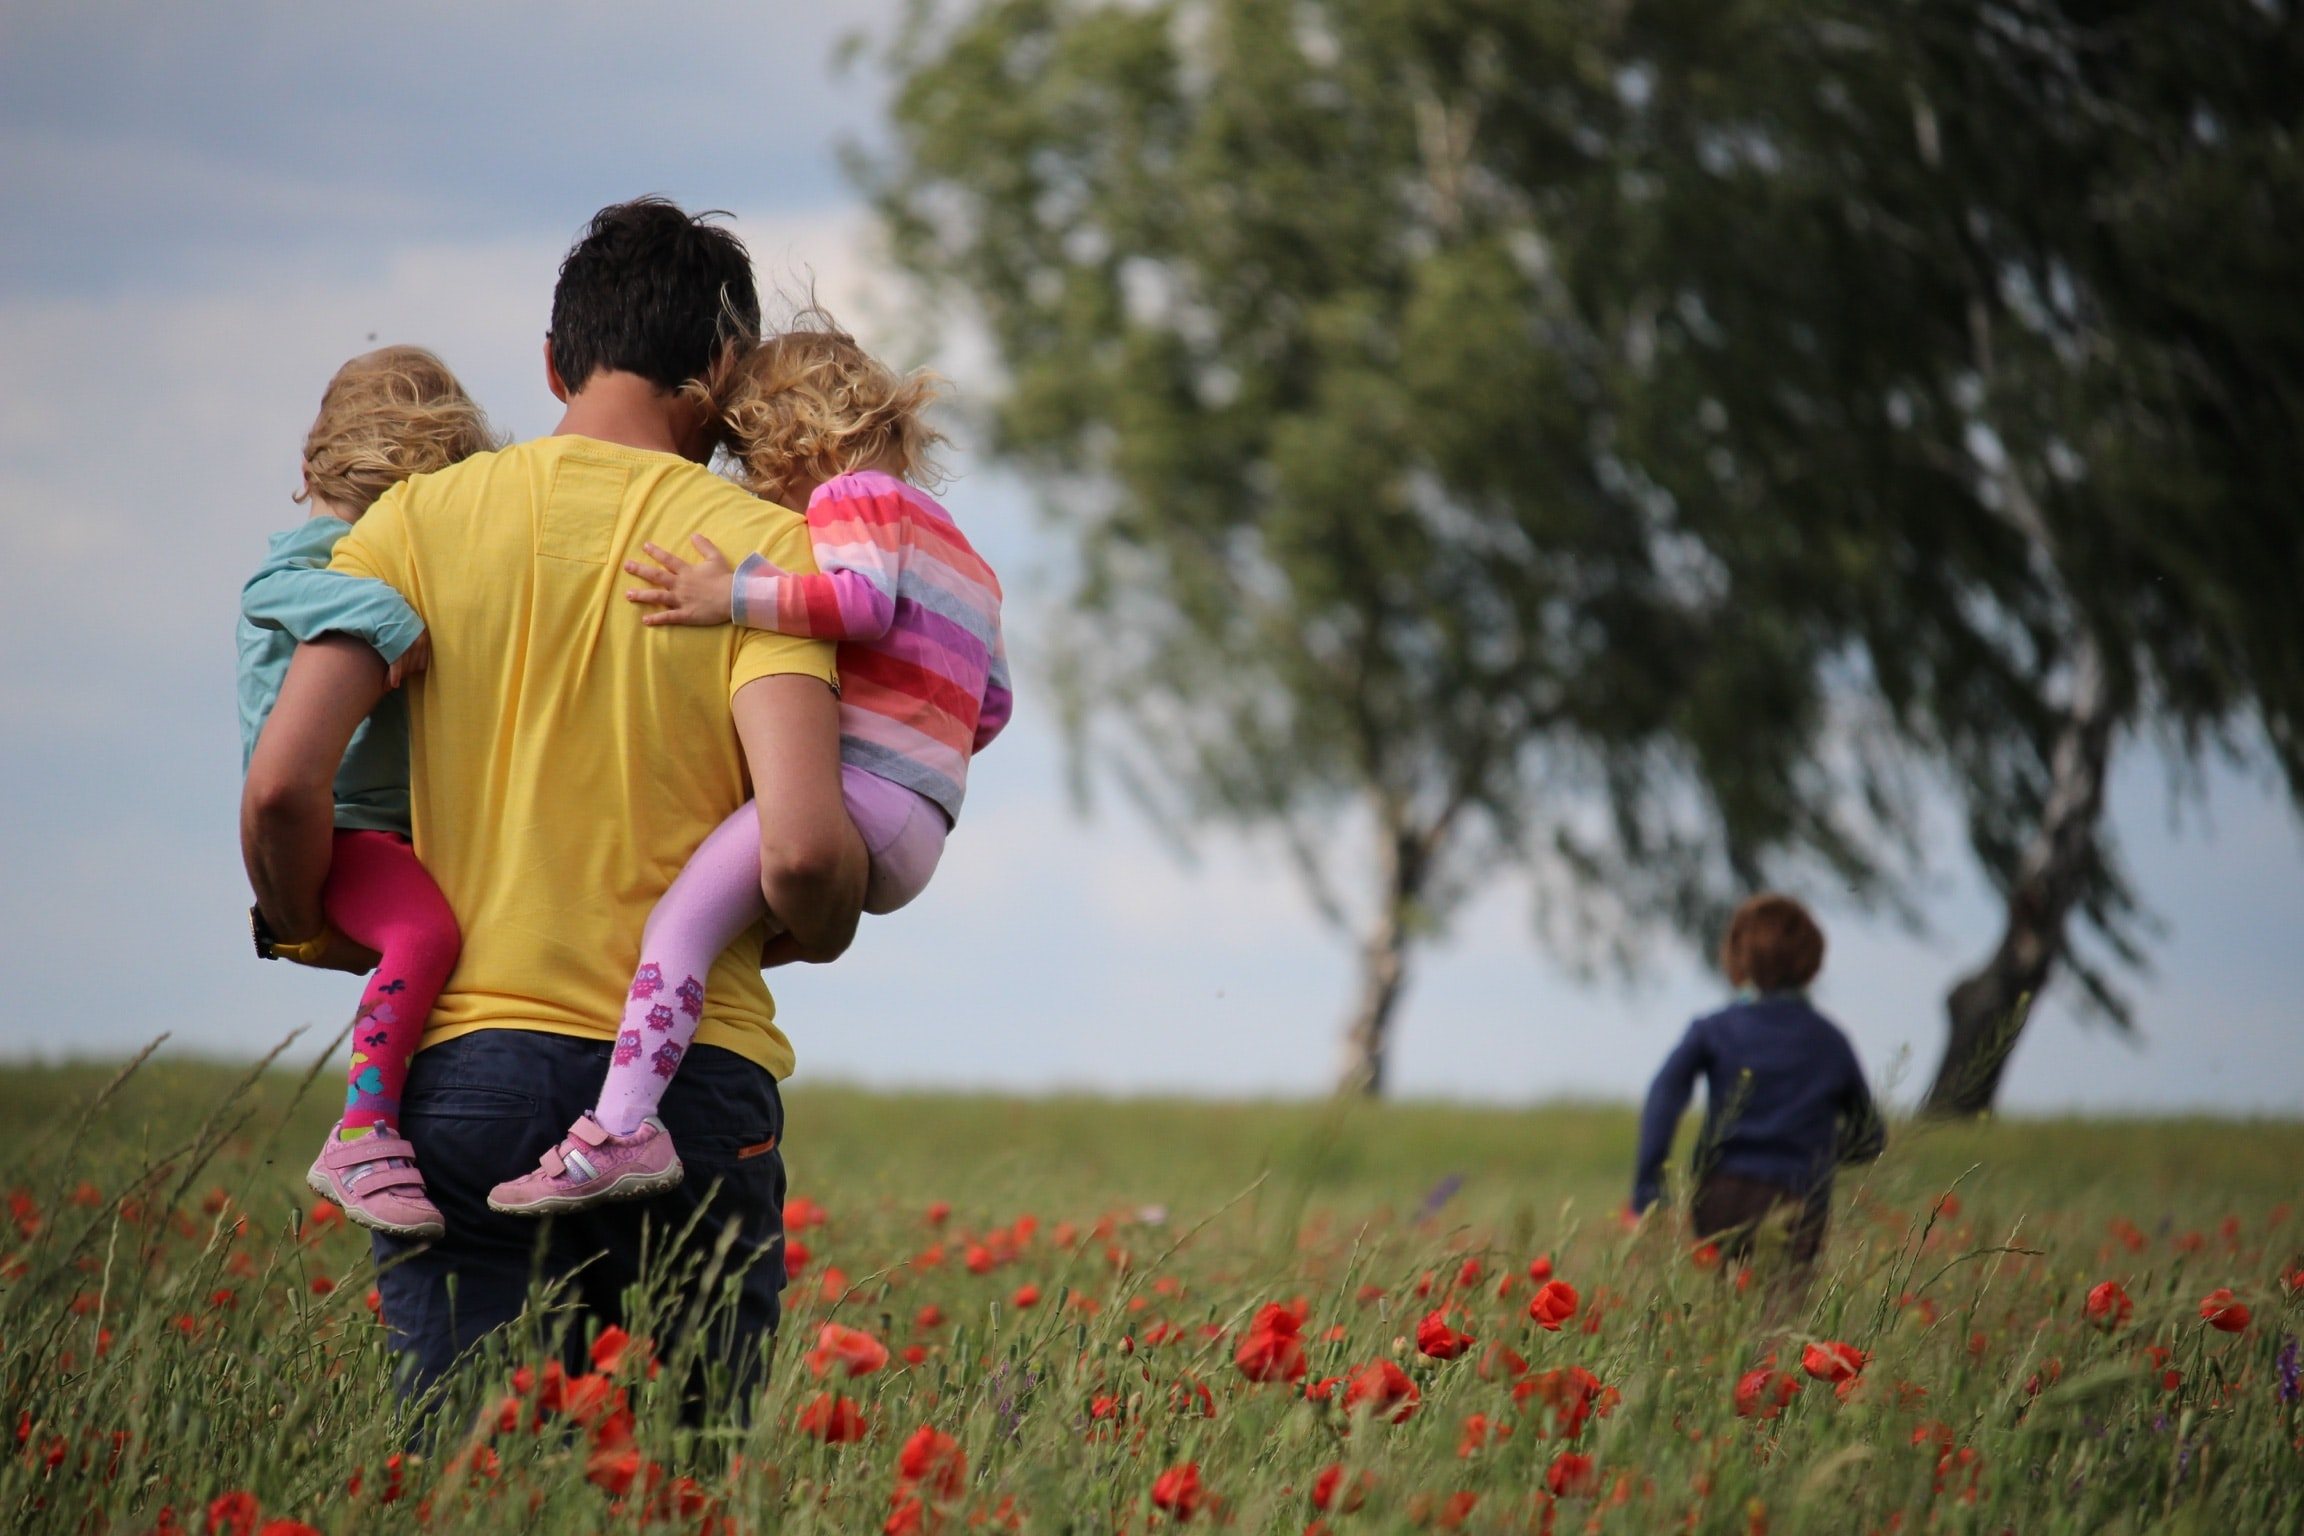 A father holding 2 kids and another child running in the distance